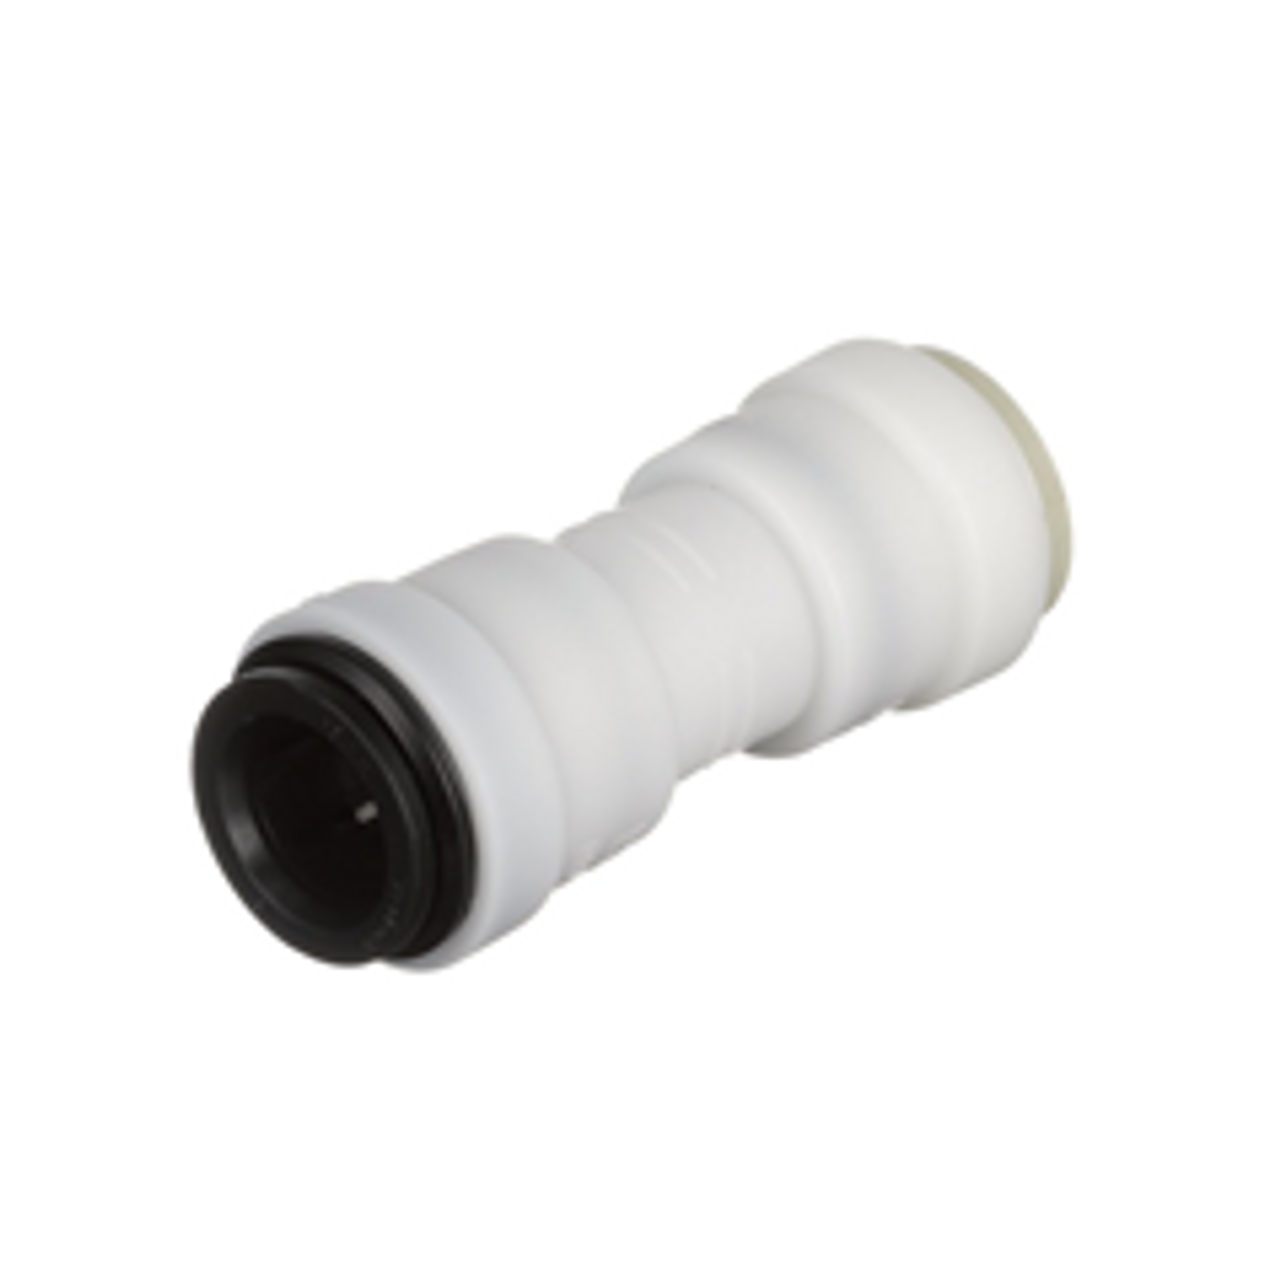 """½"""" CTS x 15mm Reducing Coupling 1116-1015"""